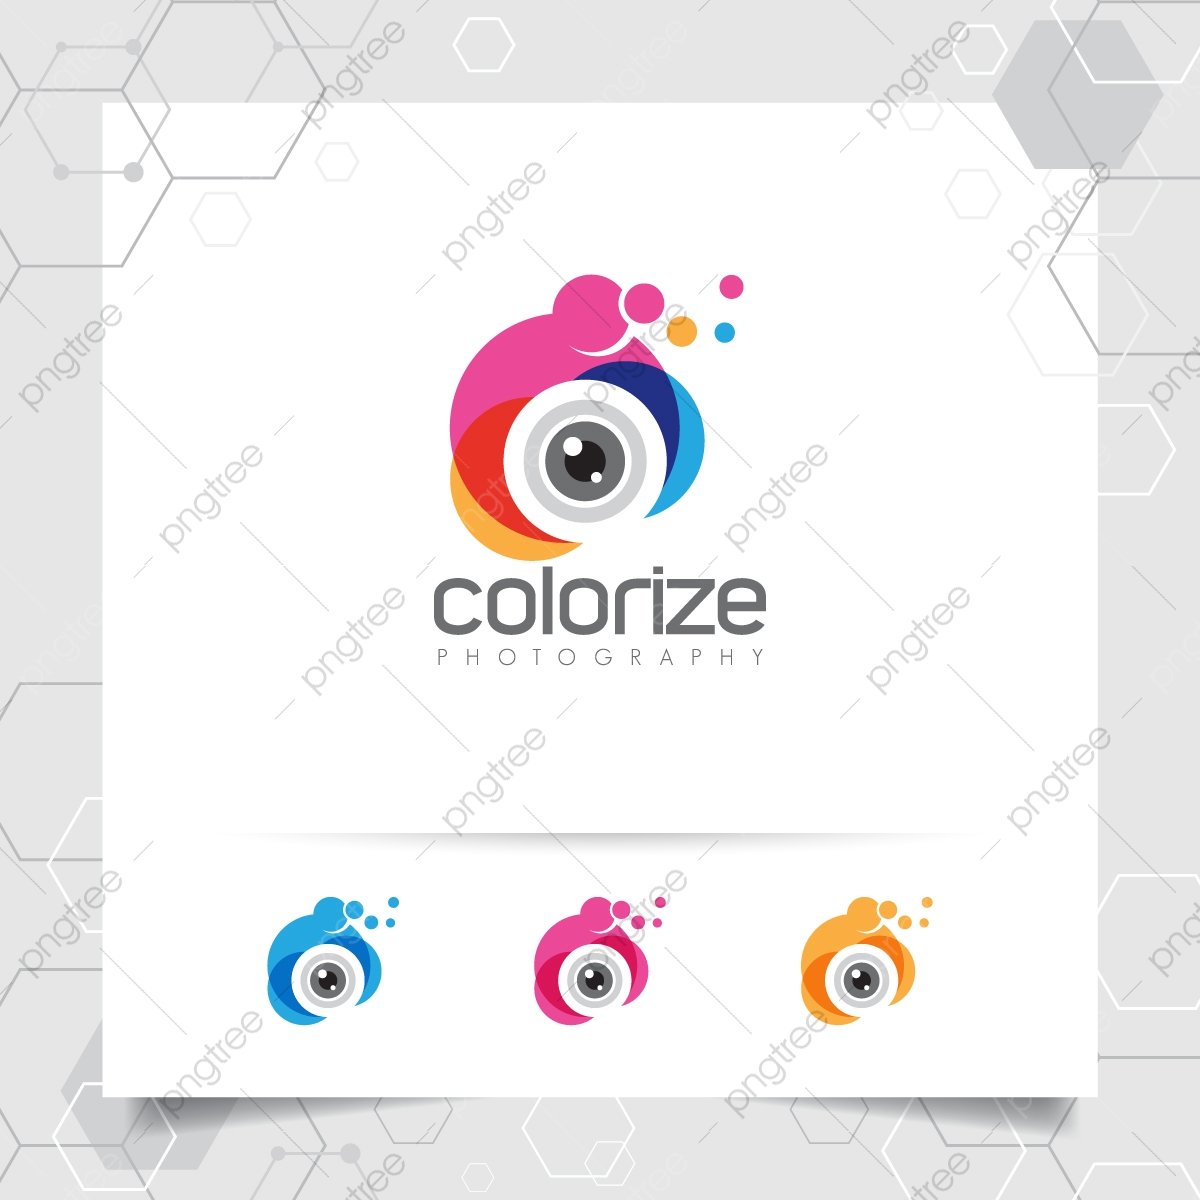 Photography And Photo Logo Design With Concept Of Colorful Camera Lens Icon Vector For Photographer Template For Free Download On Pngtree